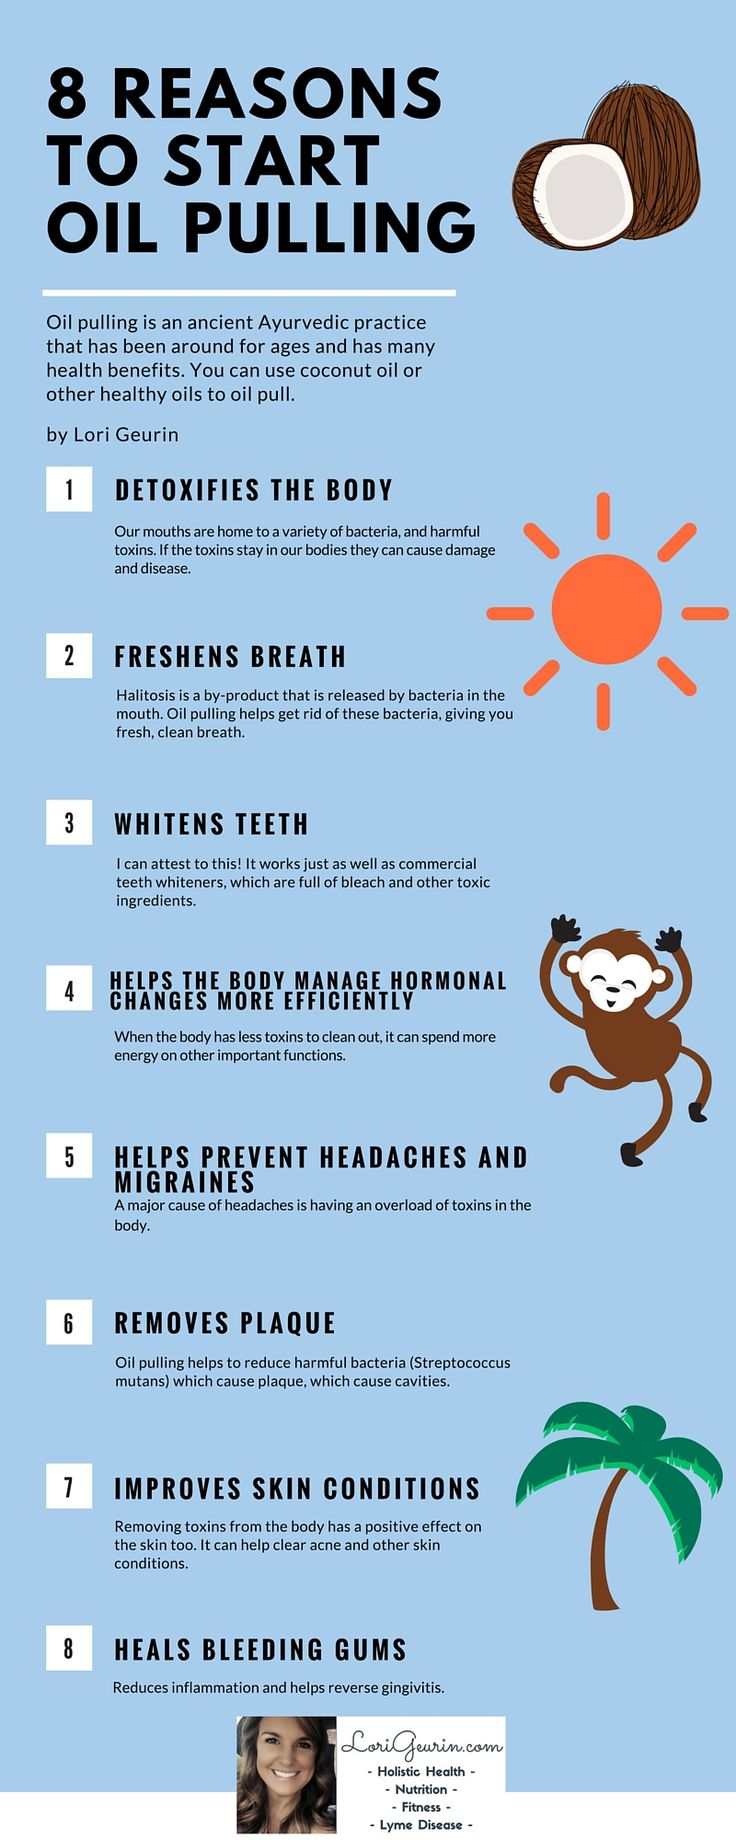 8 Reasons To Start Oil Pulling For Better HealthLaura Zaplitny